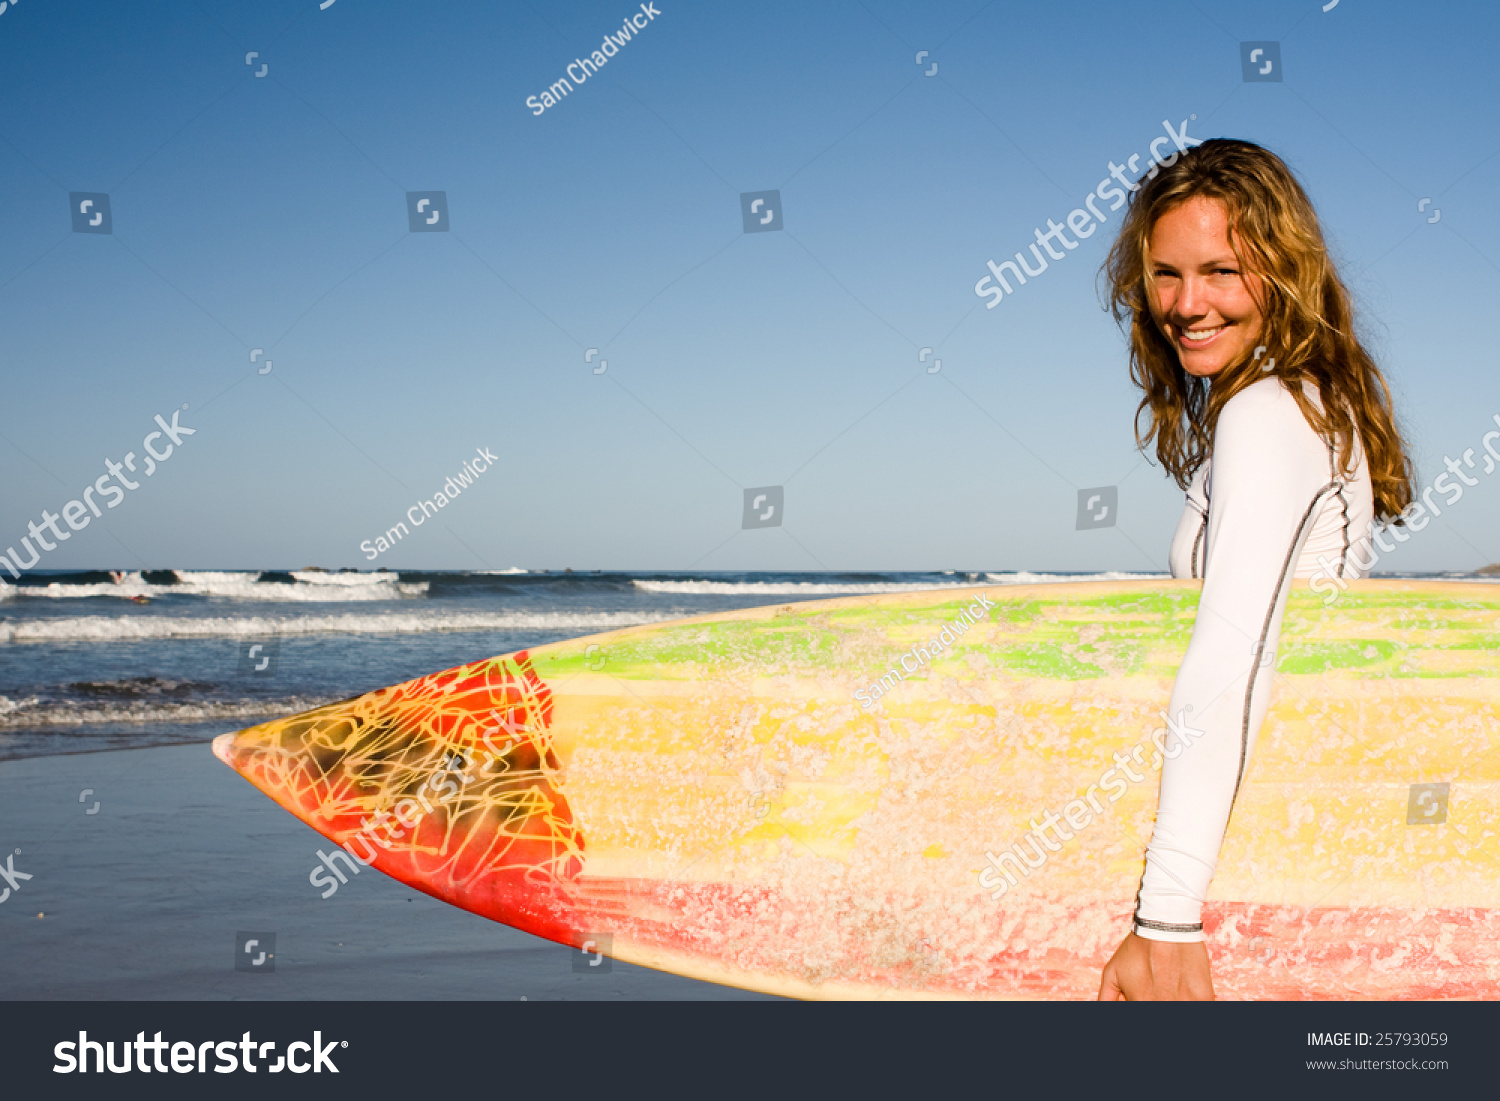 Girl Standing On The Beach Holding - 552.9KB